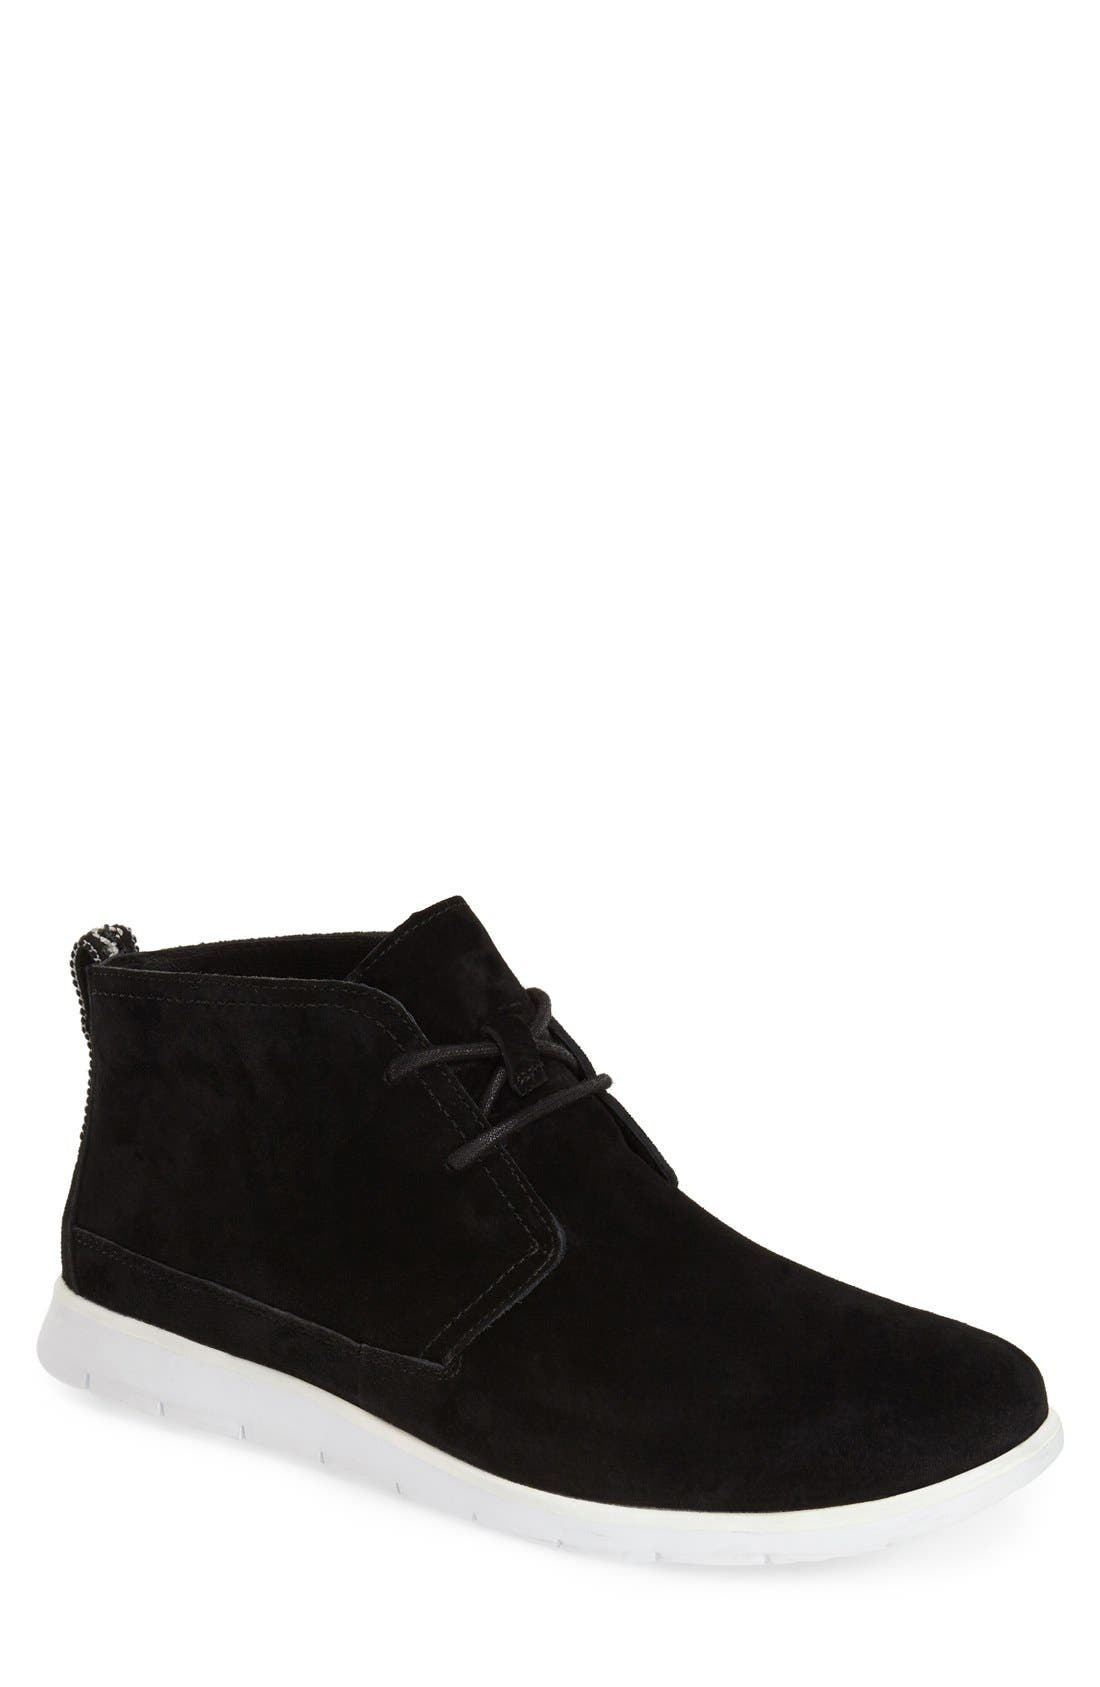 Freamon Suede Chukka Boot,                         Main,                         color, Black